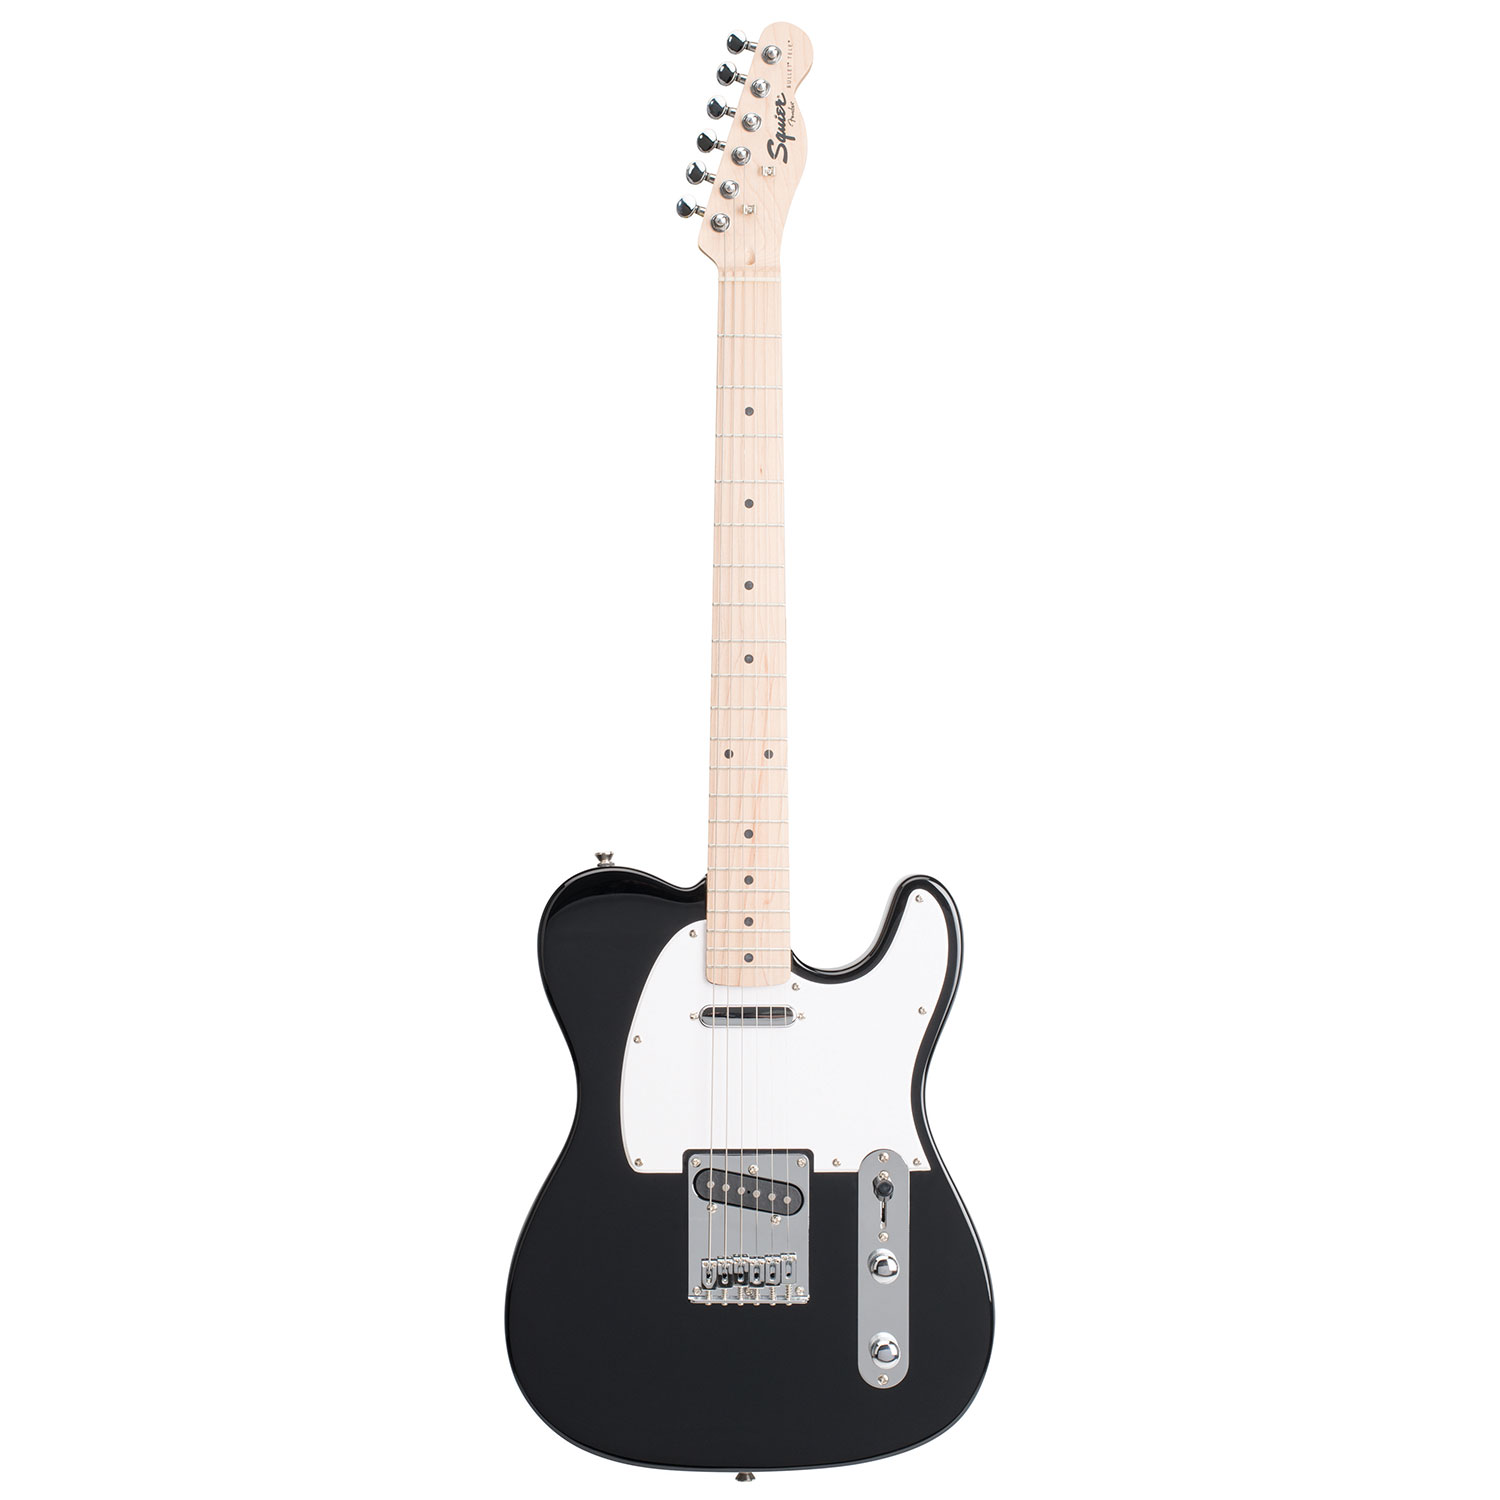 en CA category electric guitars aspx